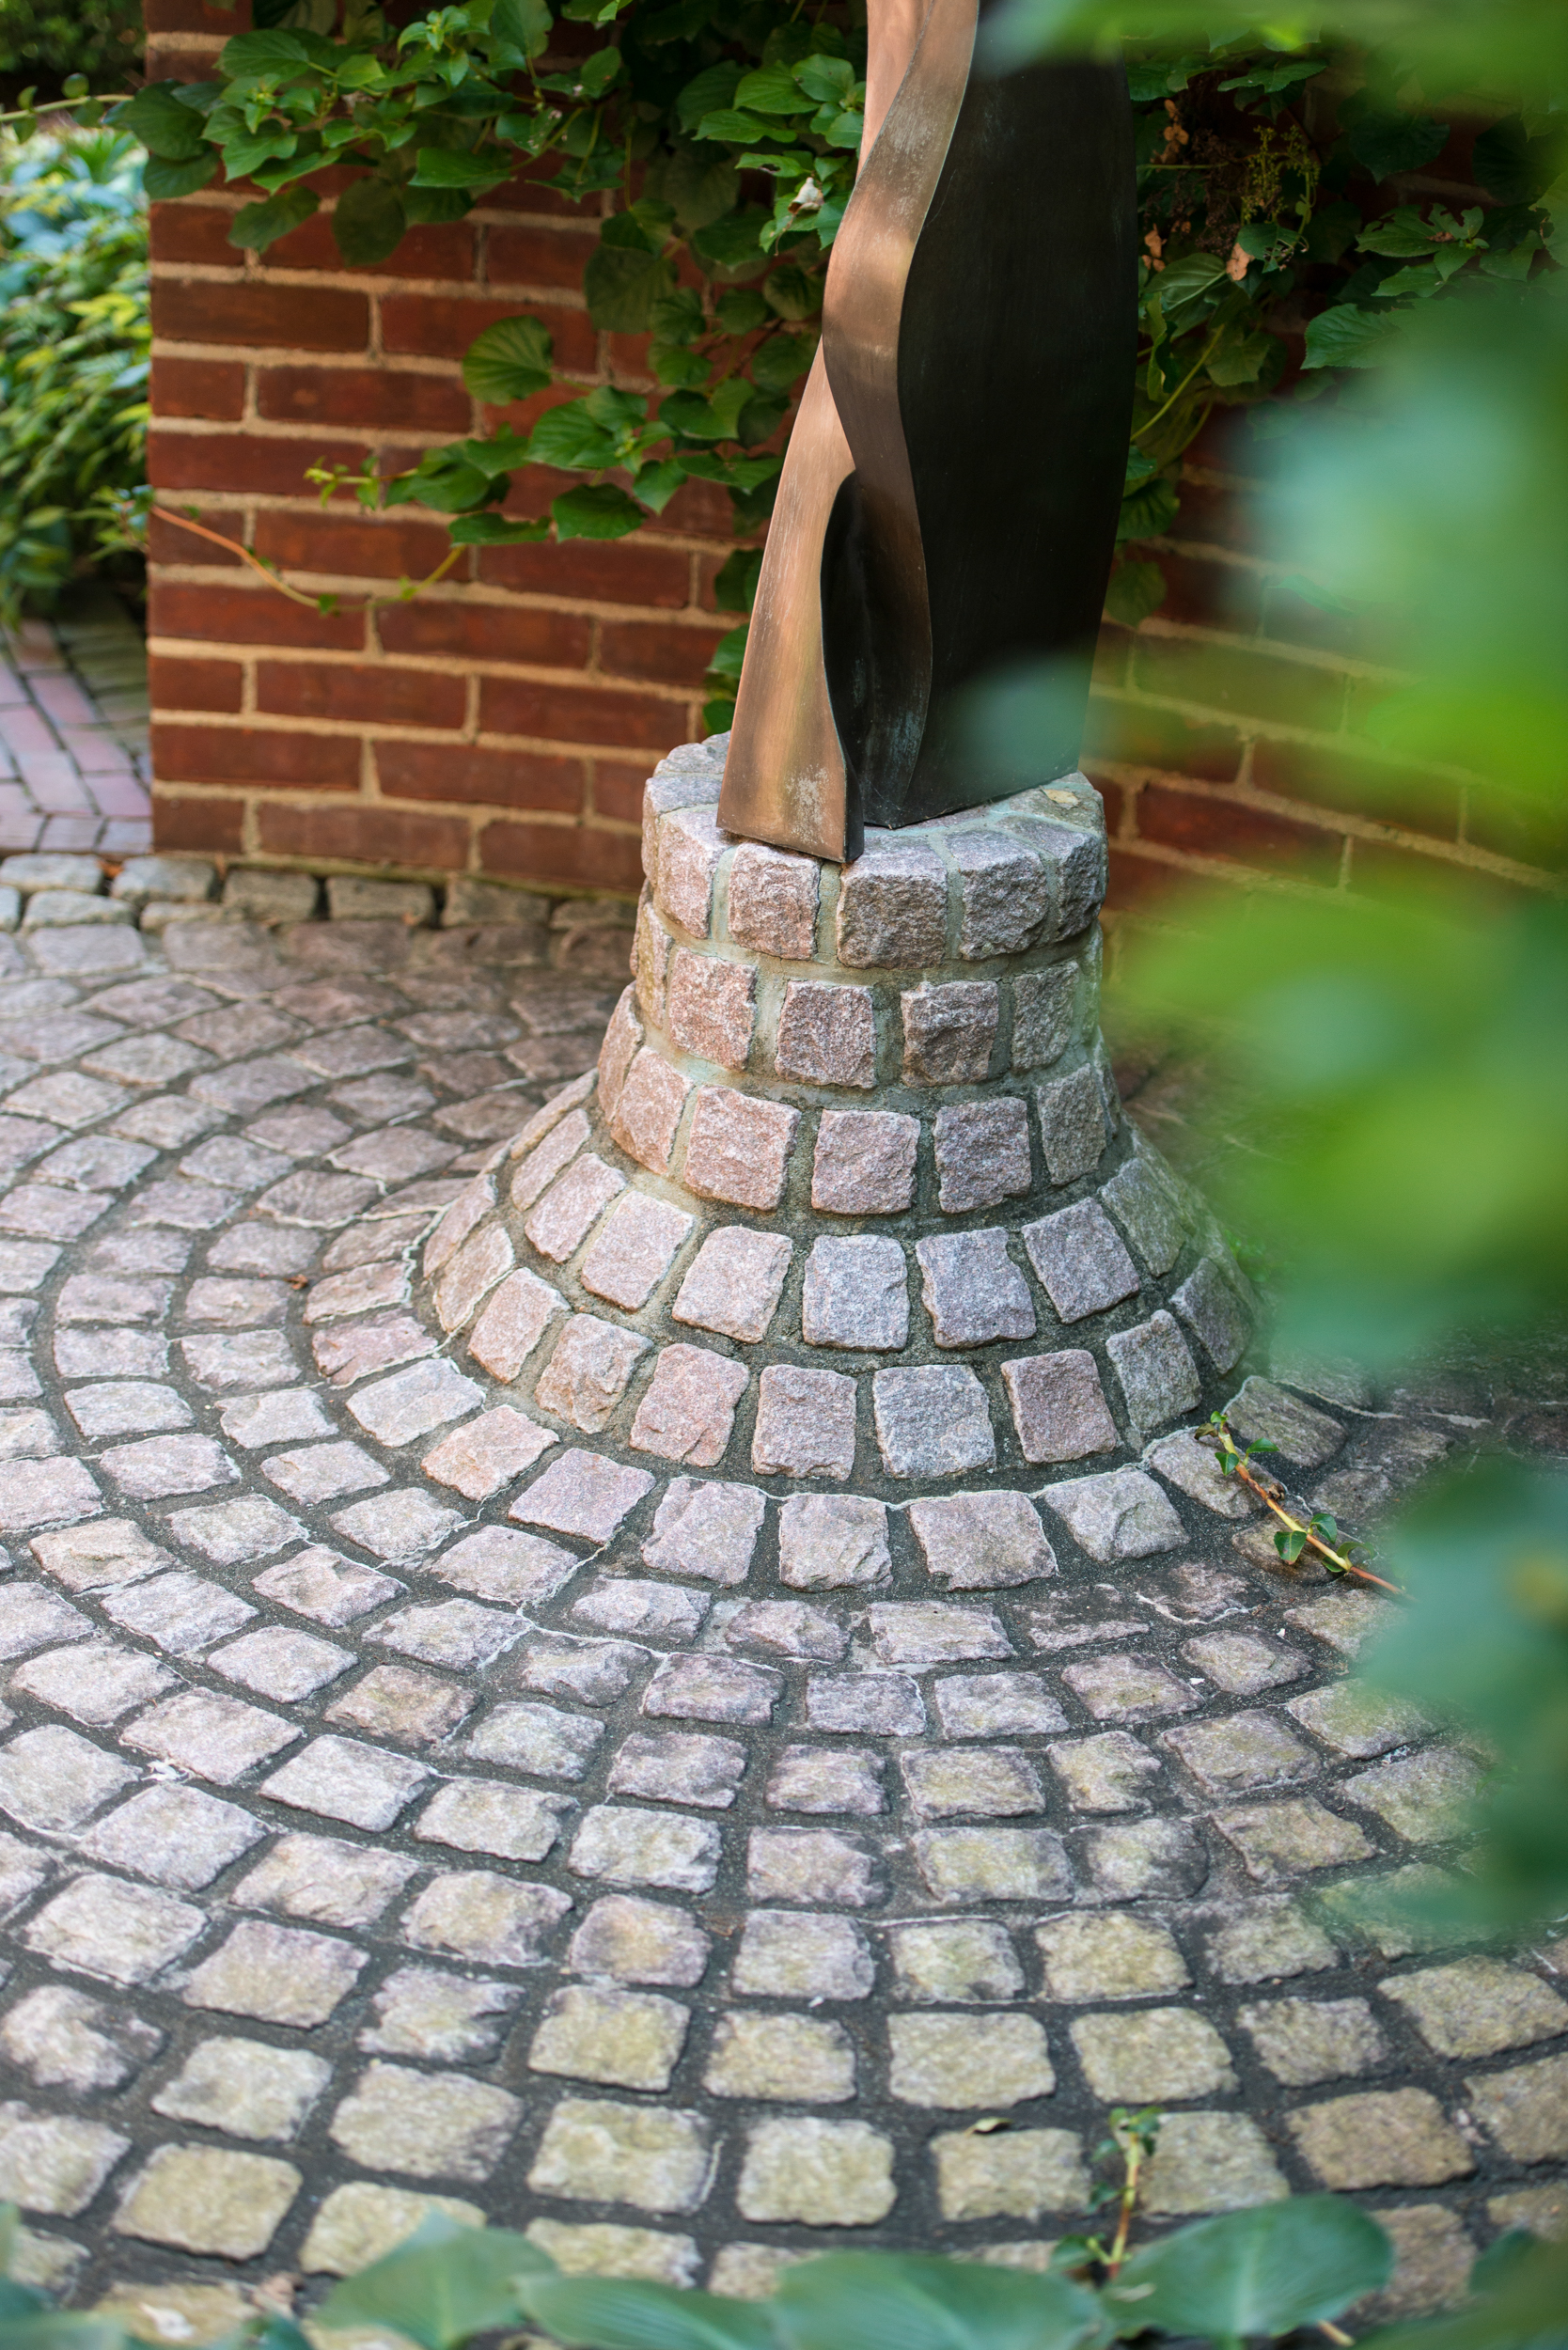 Cut garnite cobble stone pavers used as a support base for a sculptural piece